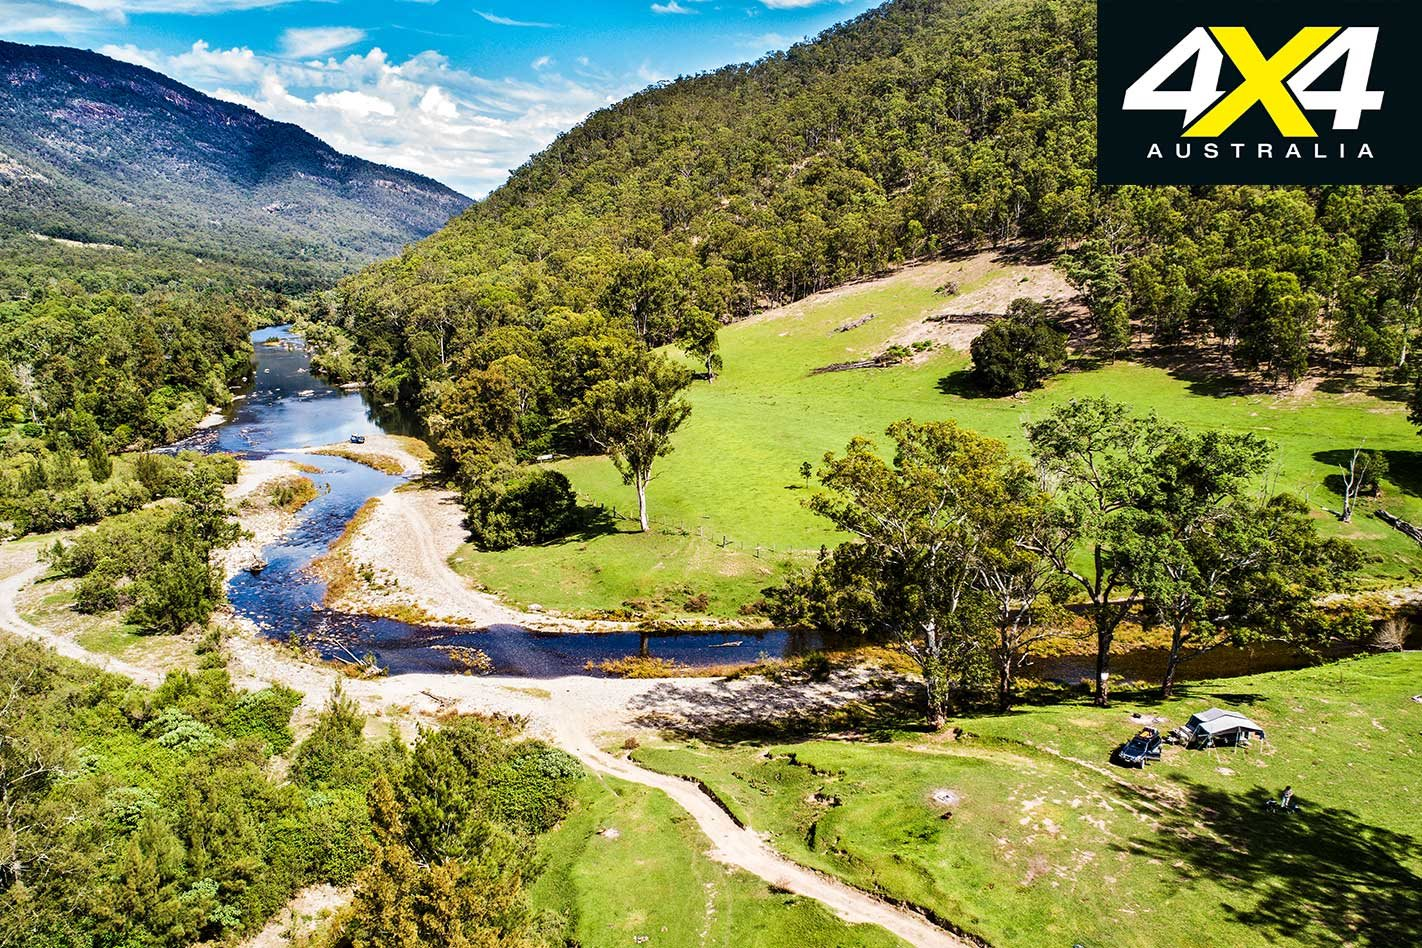 Oxley Wild Rivers